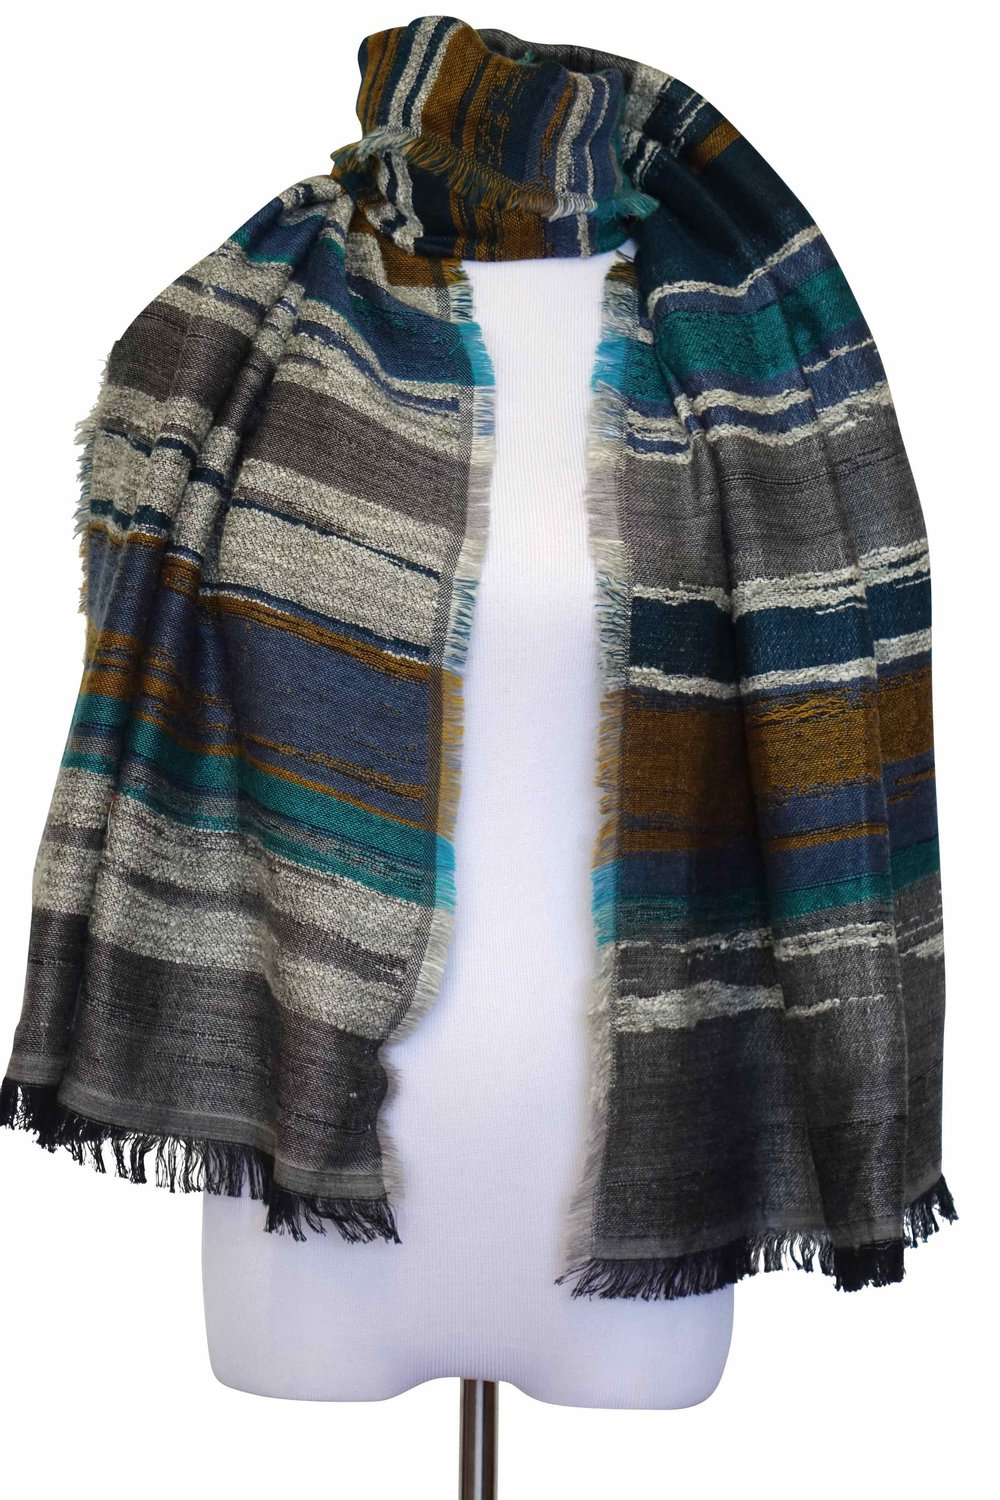 STYLE NO: 11197  COLOR: GREY MULTI  QUALITY: 8%WOOL 42% ACRYLIC 42% COTTON 8% POLYESTER  SIZE: 70 X 180 CM